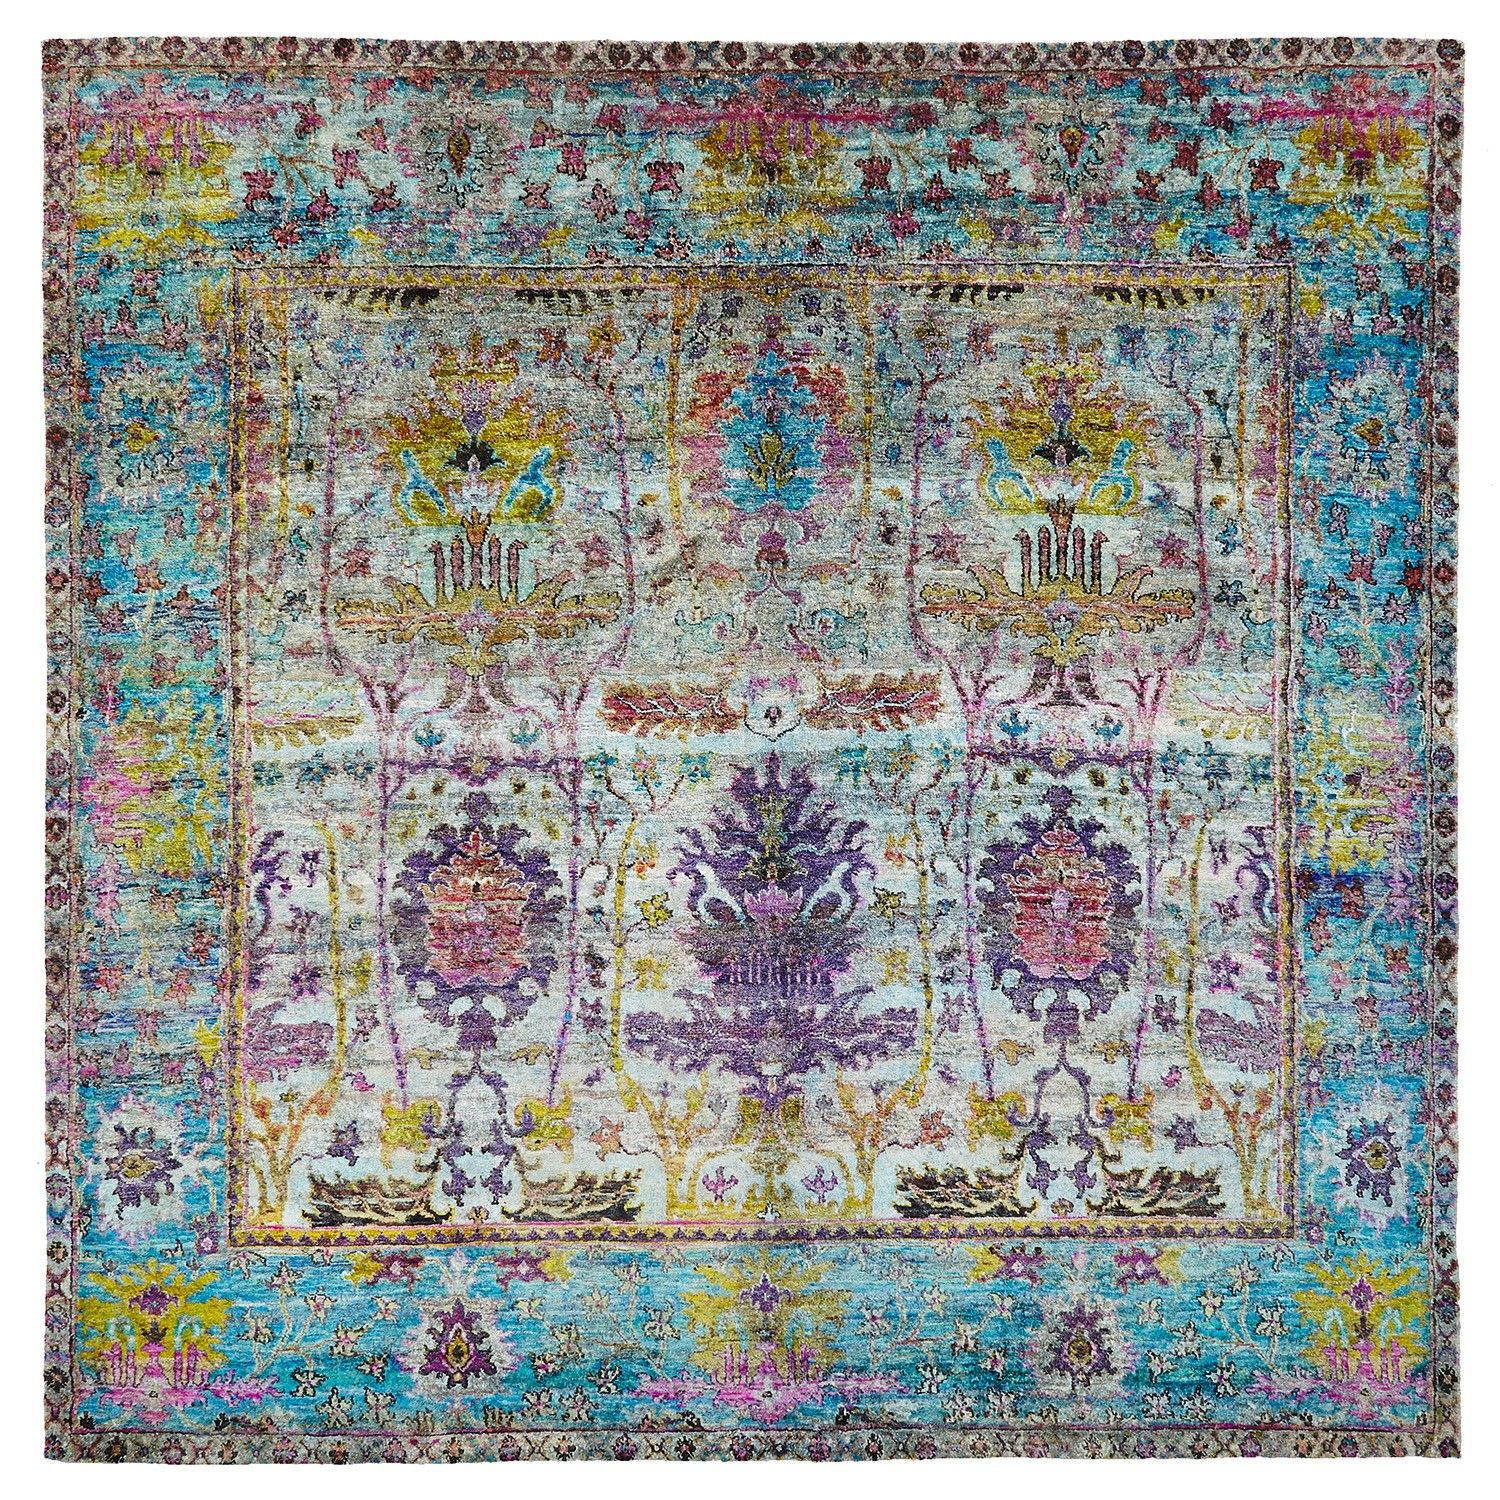 Captivating 17 Best Images About Rugs On Pinterest Persian Runner And Wool